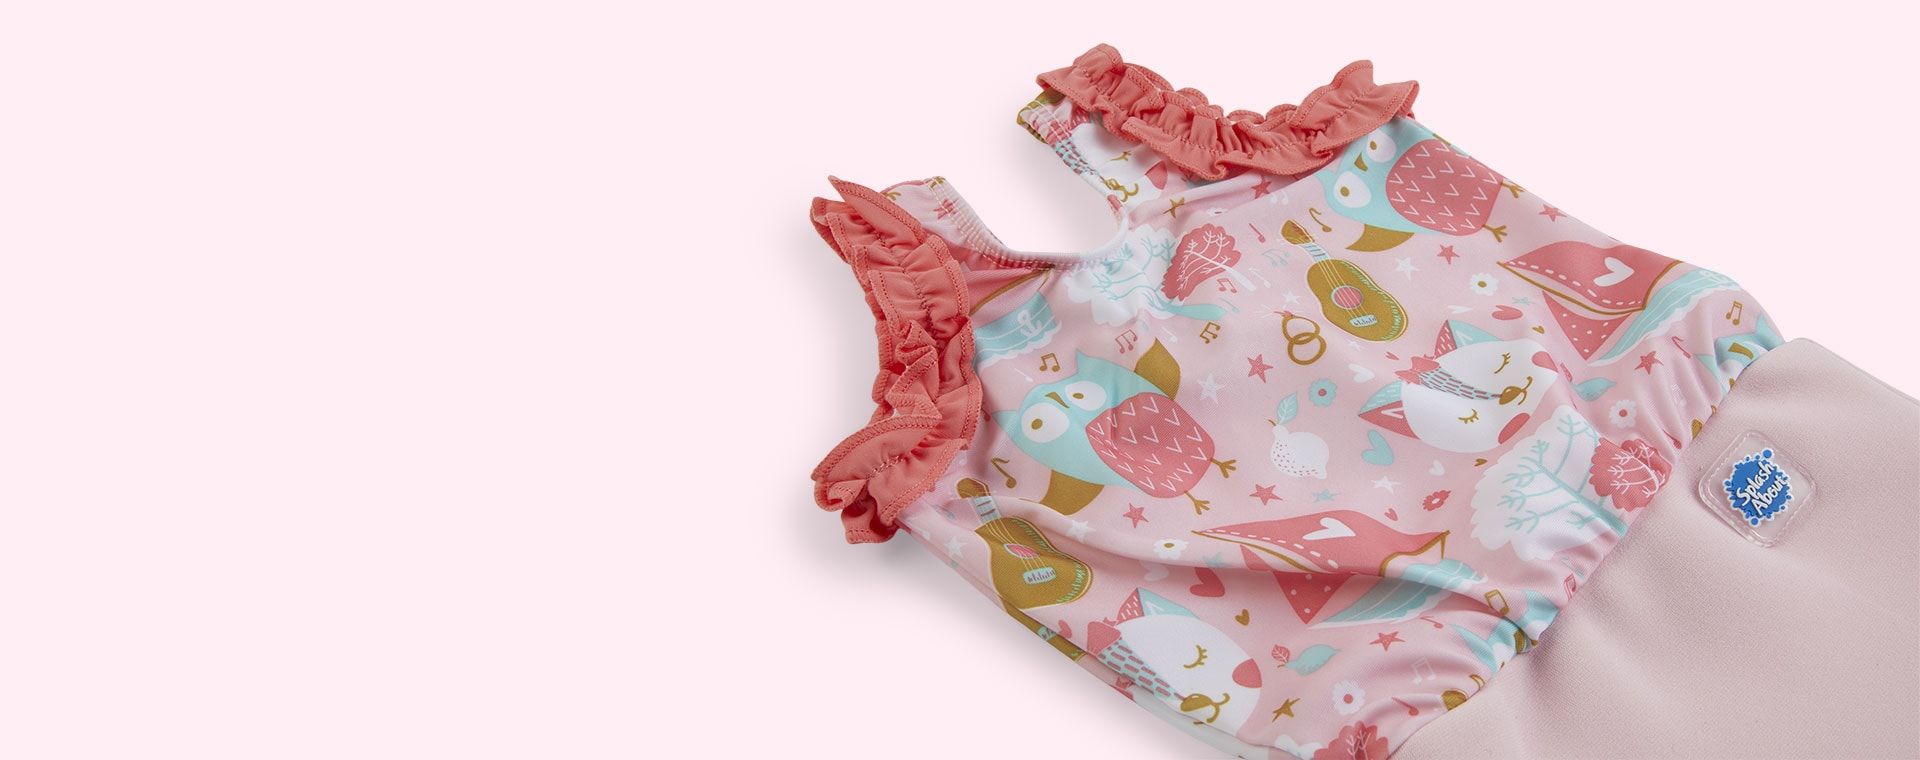 The Owl and the Pussycat Splash About Happy Nappy Costume